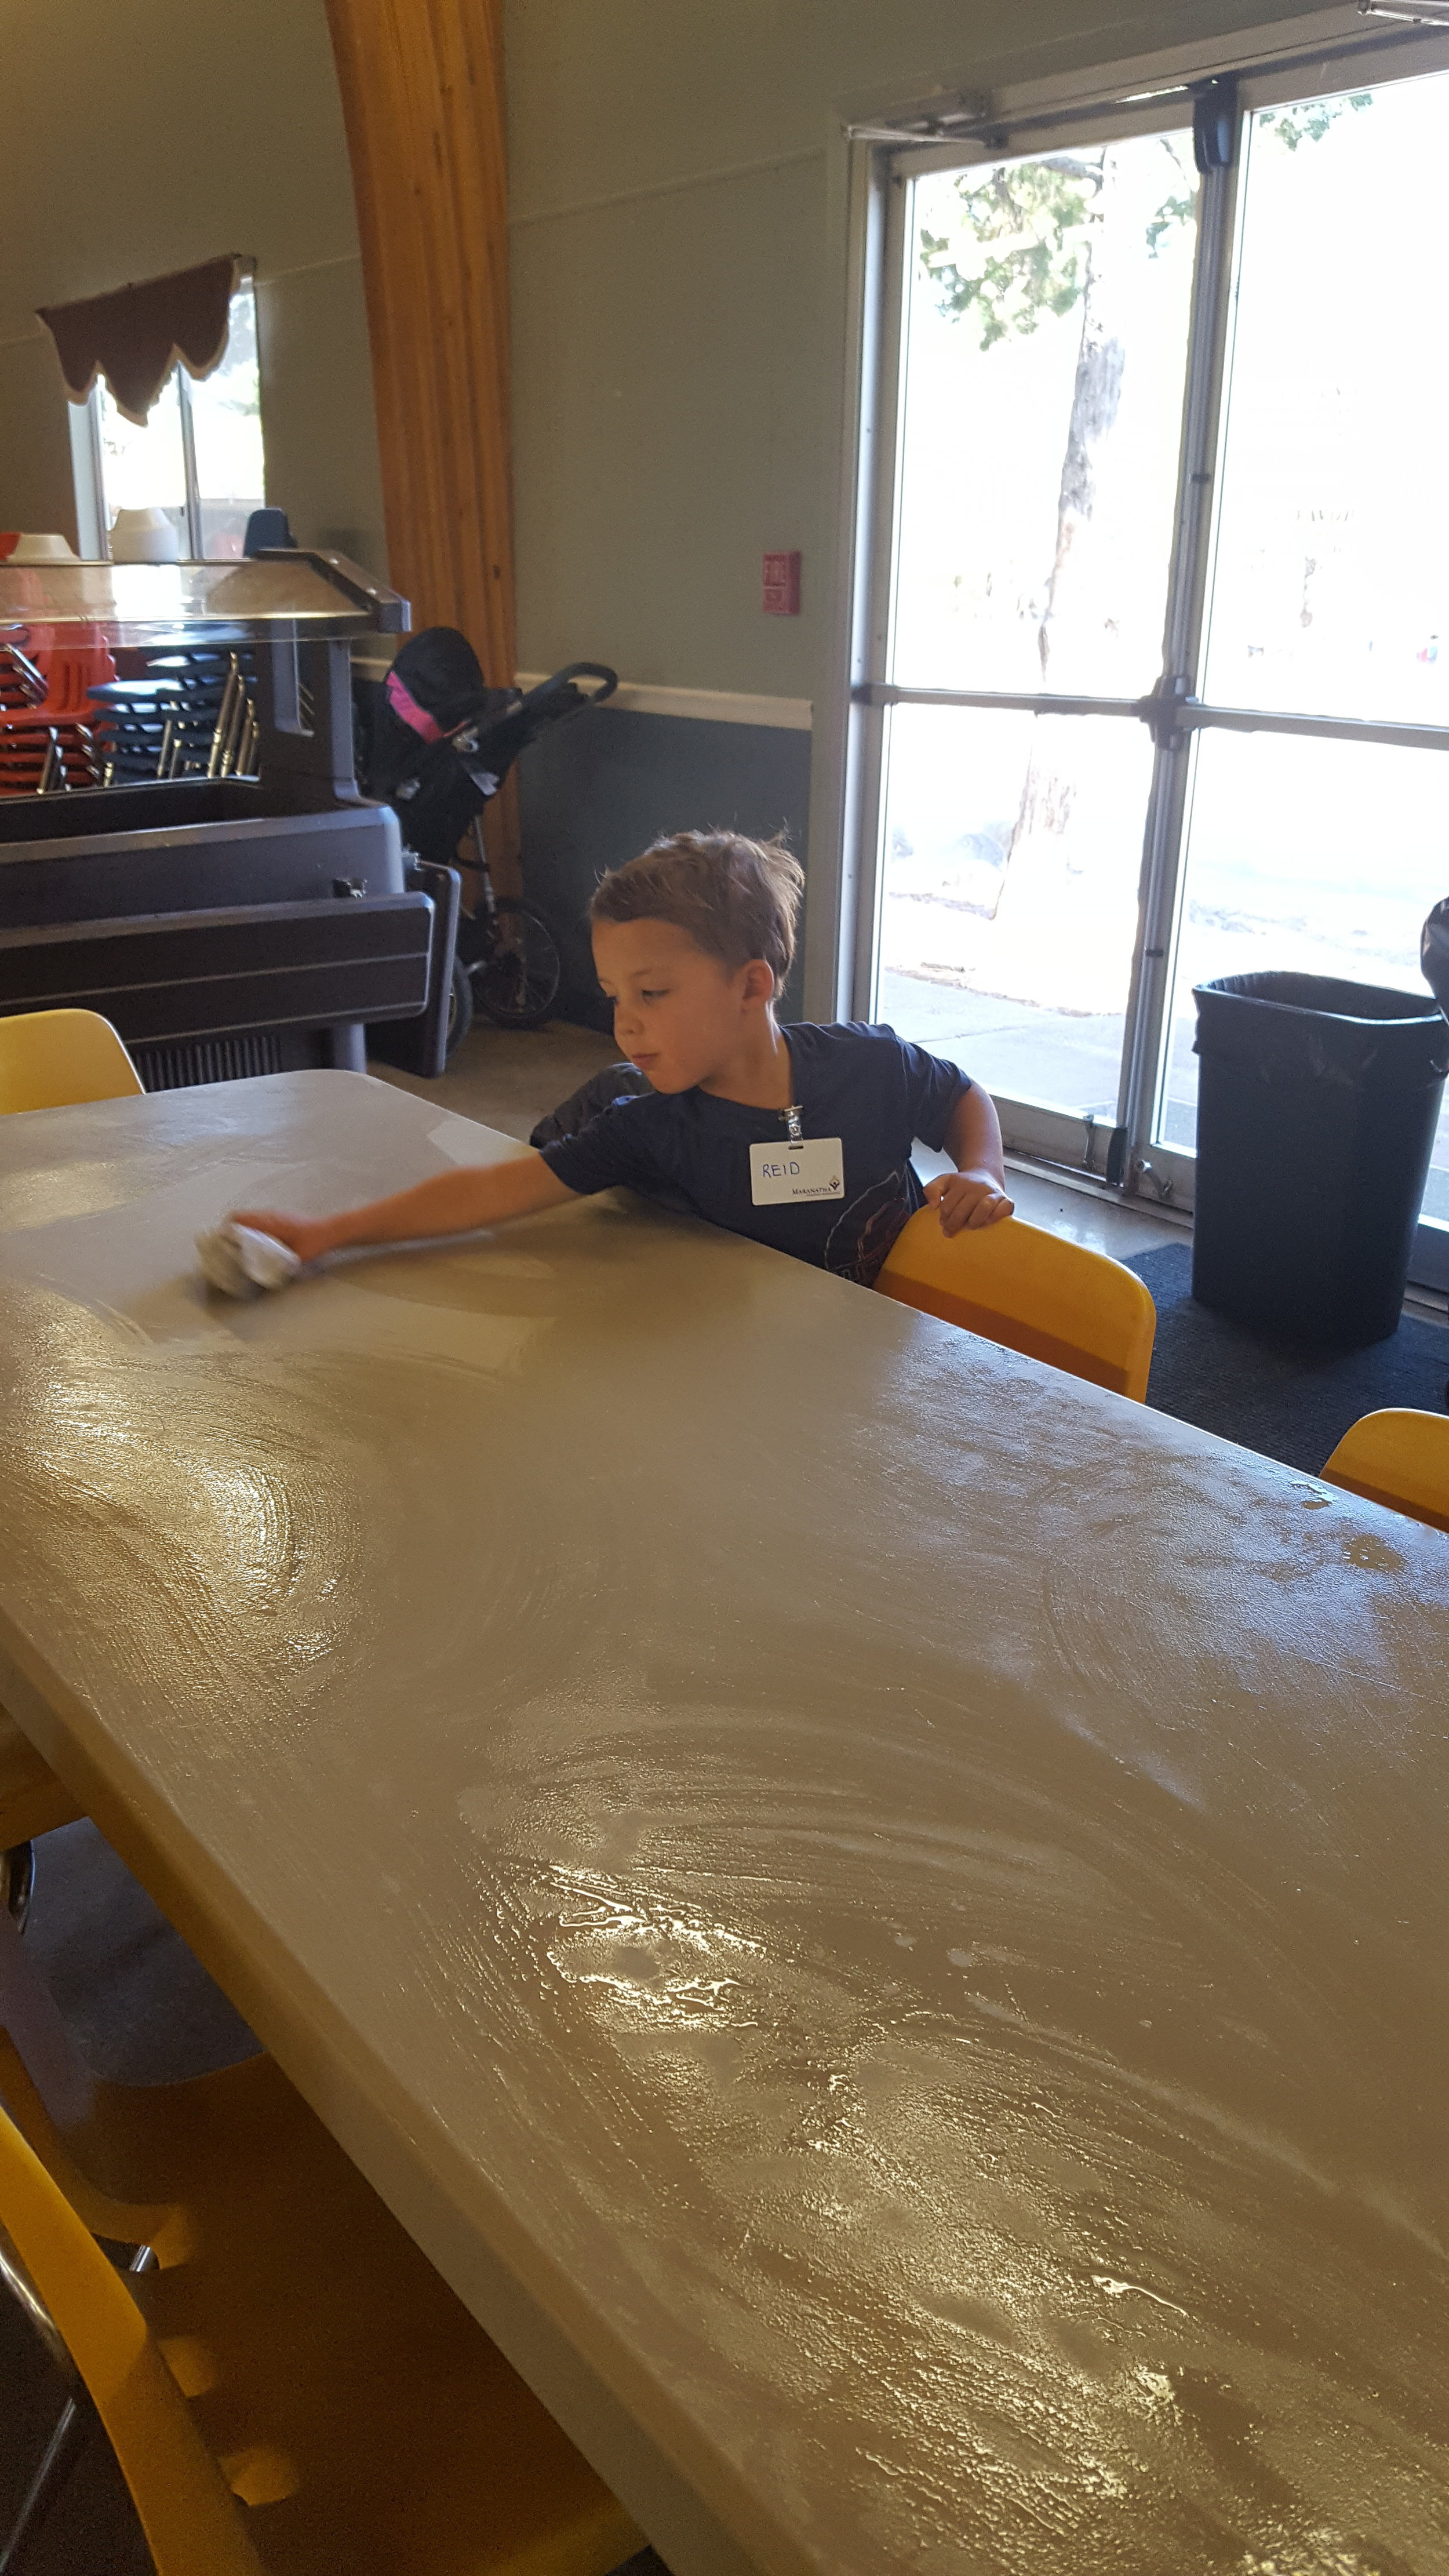 The boys were in charge of cleaning all the tables after breakfast, lunch, and dinner.